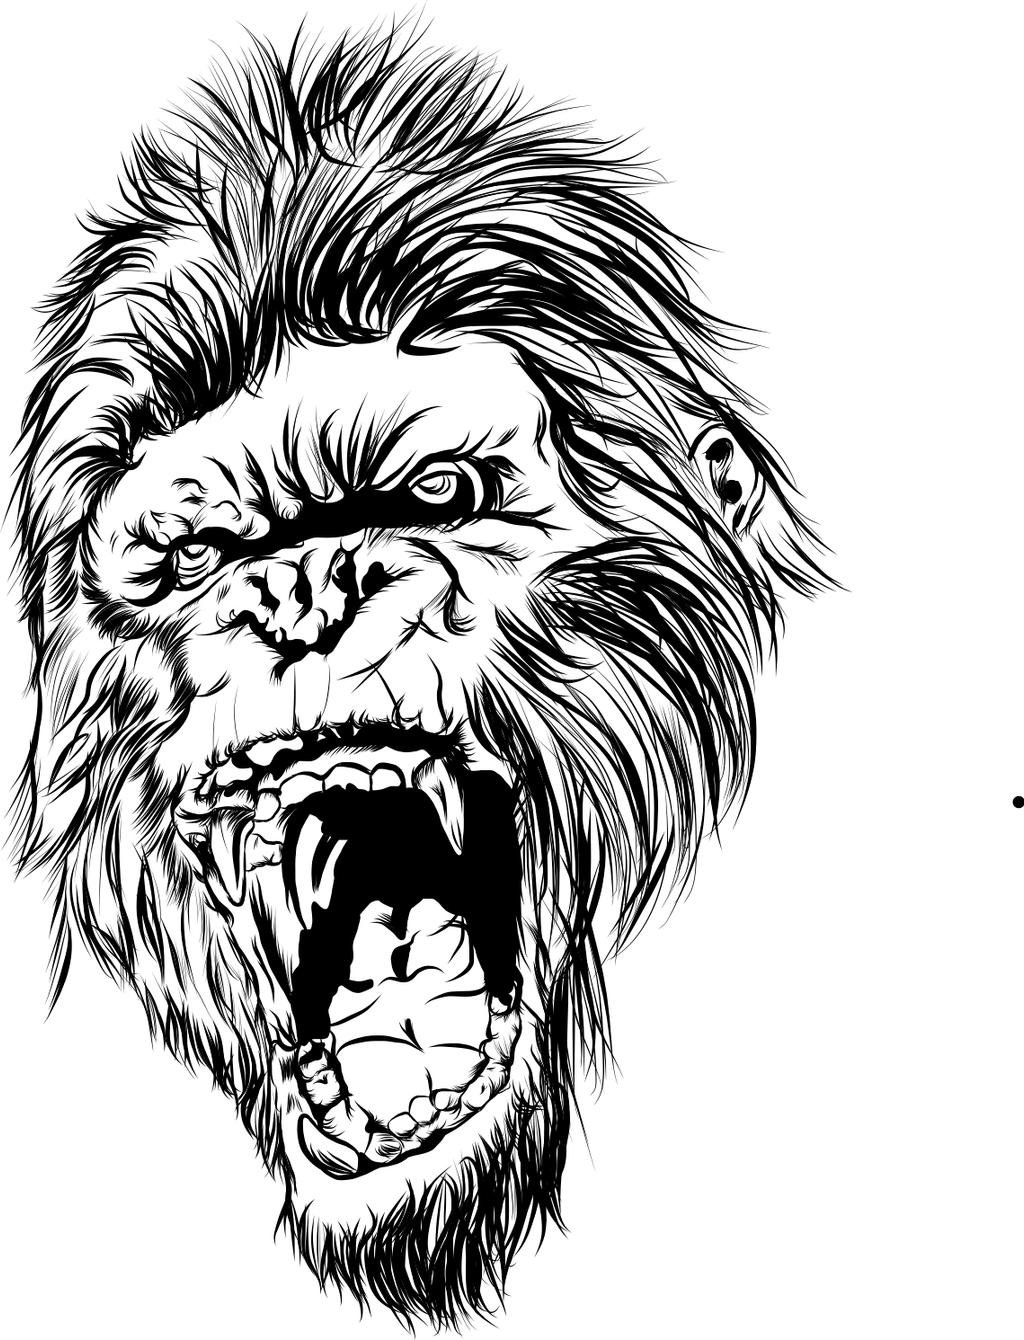 Angry Gorilla Outline - photo#42